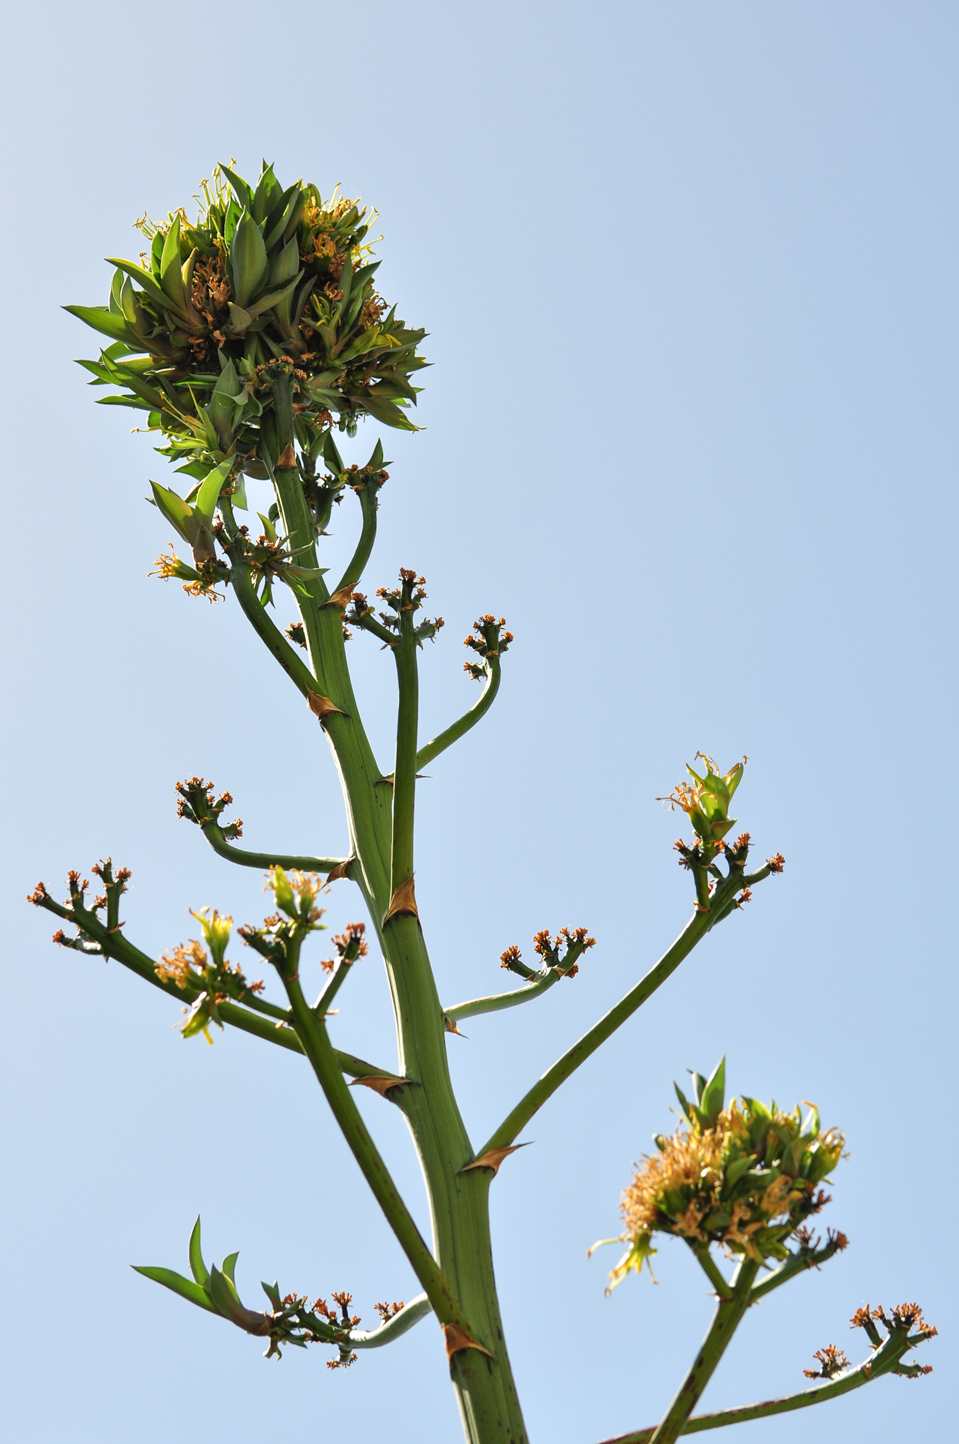 The top half of a Smooth Agave stalk against a blue sky.